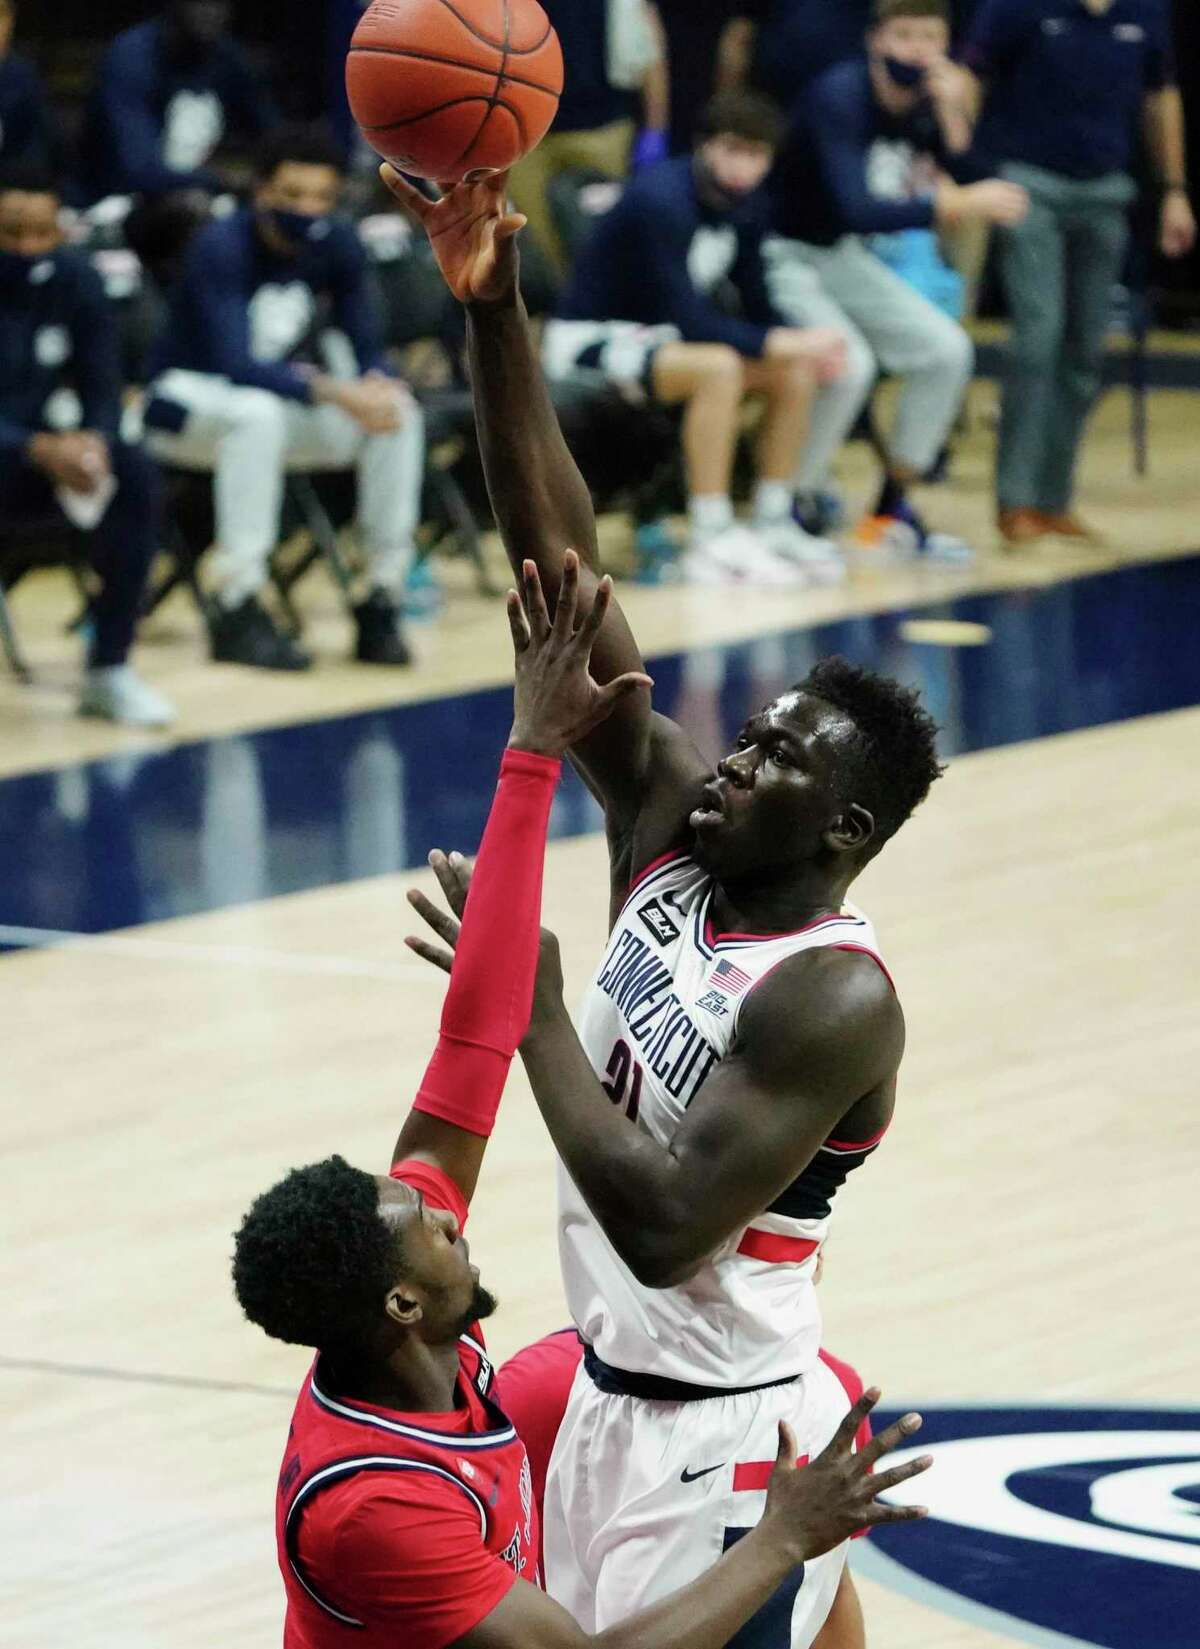 UConn forward Adama Sanogo shoots against St. John's in the first half in Storrs on Monday.